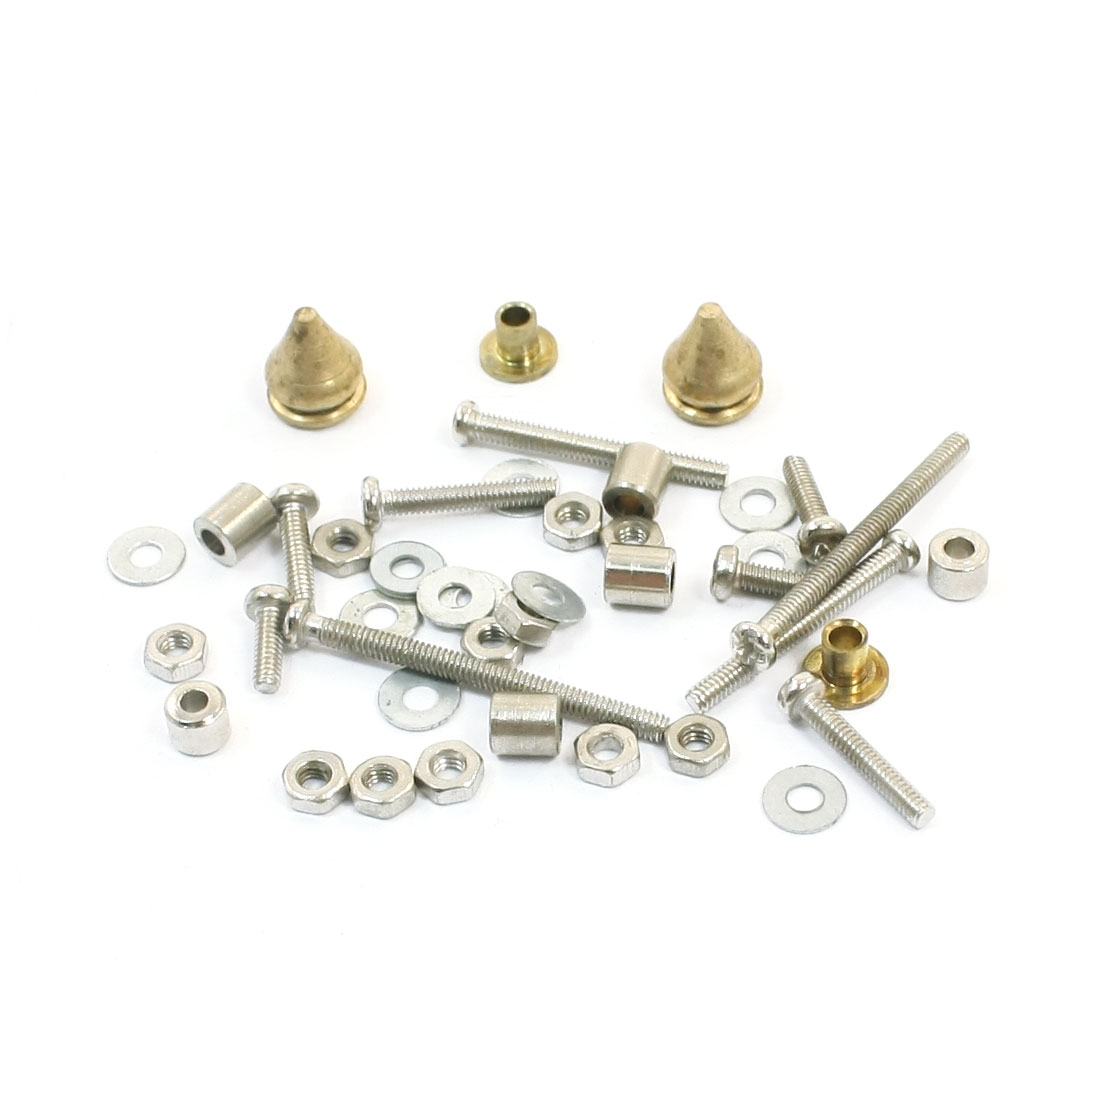 Metal Screw Spacer Sleeve Combination Mass Damper Set Mini 4WD Car Racer Grade Up Parts Series